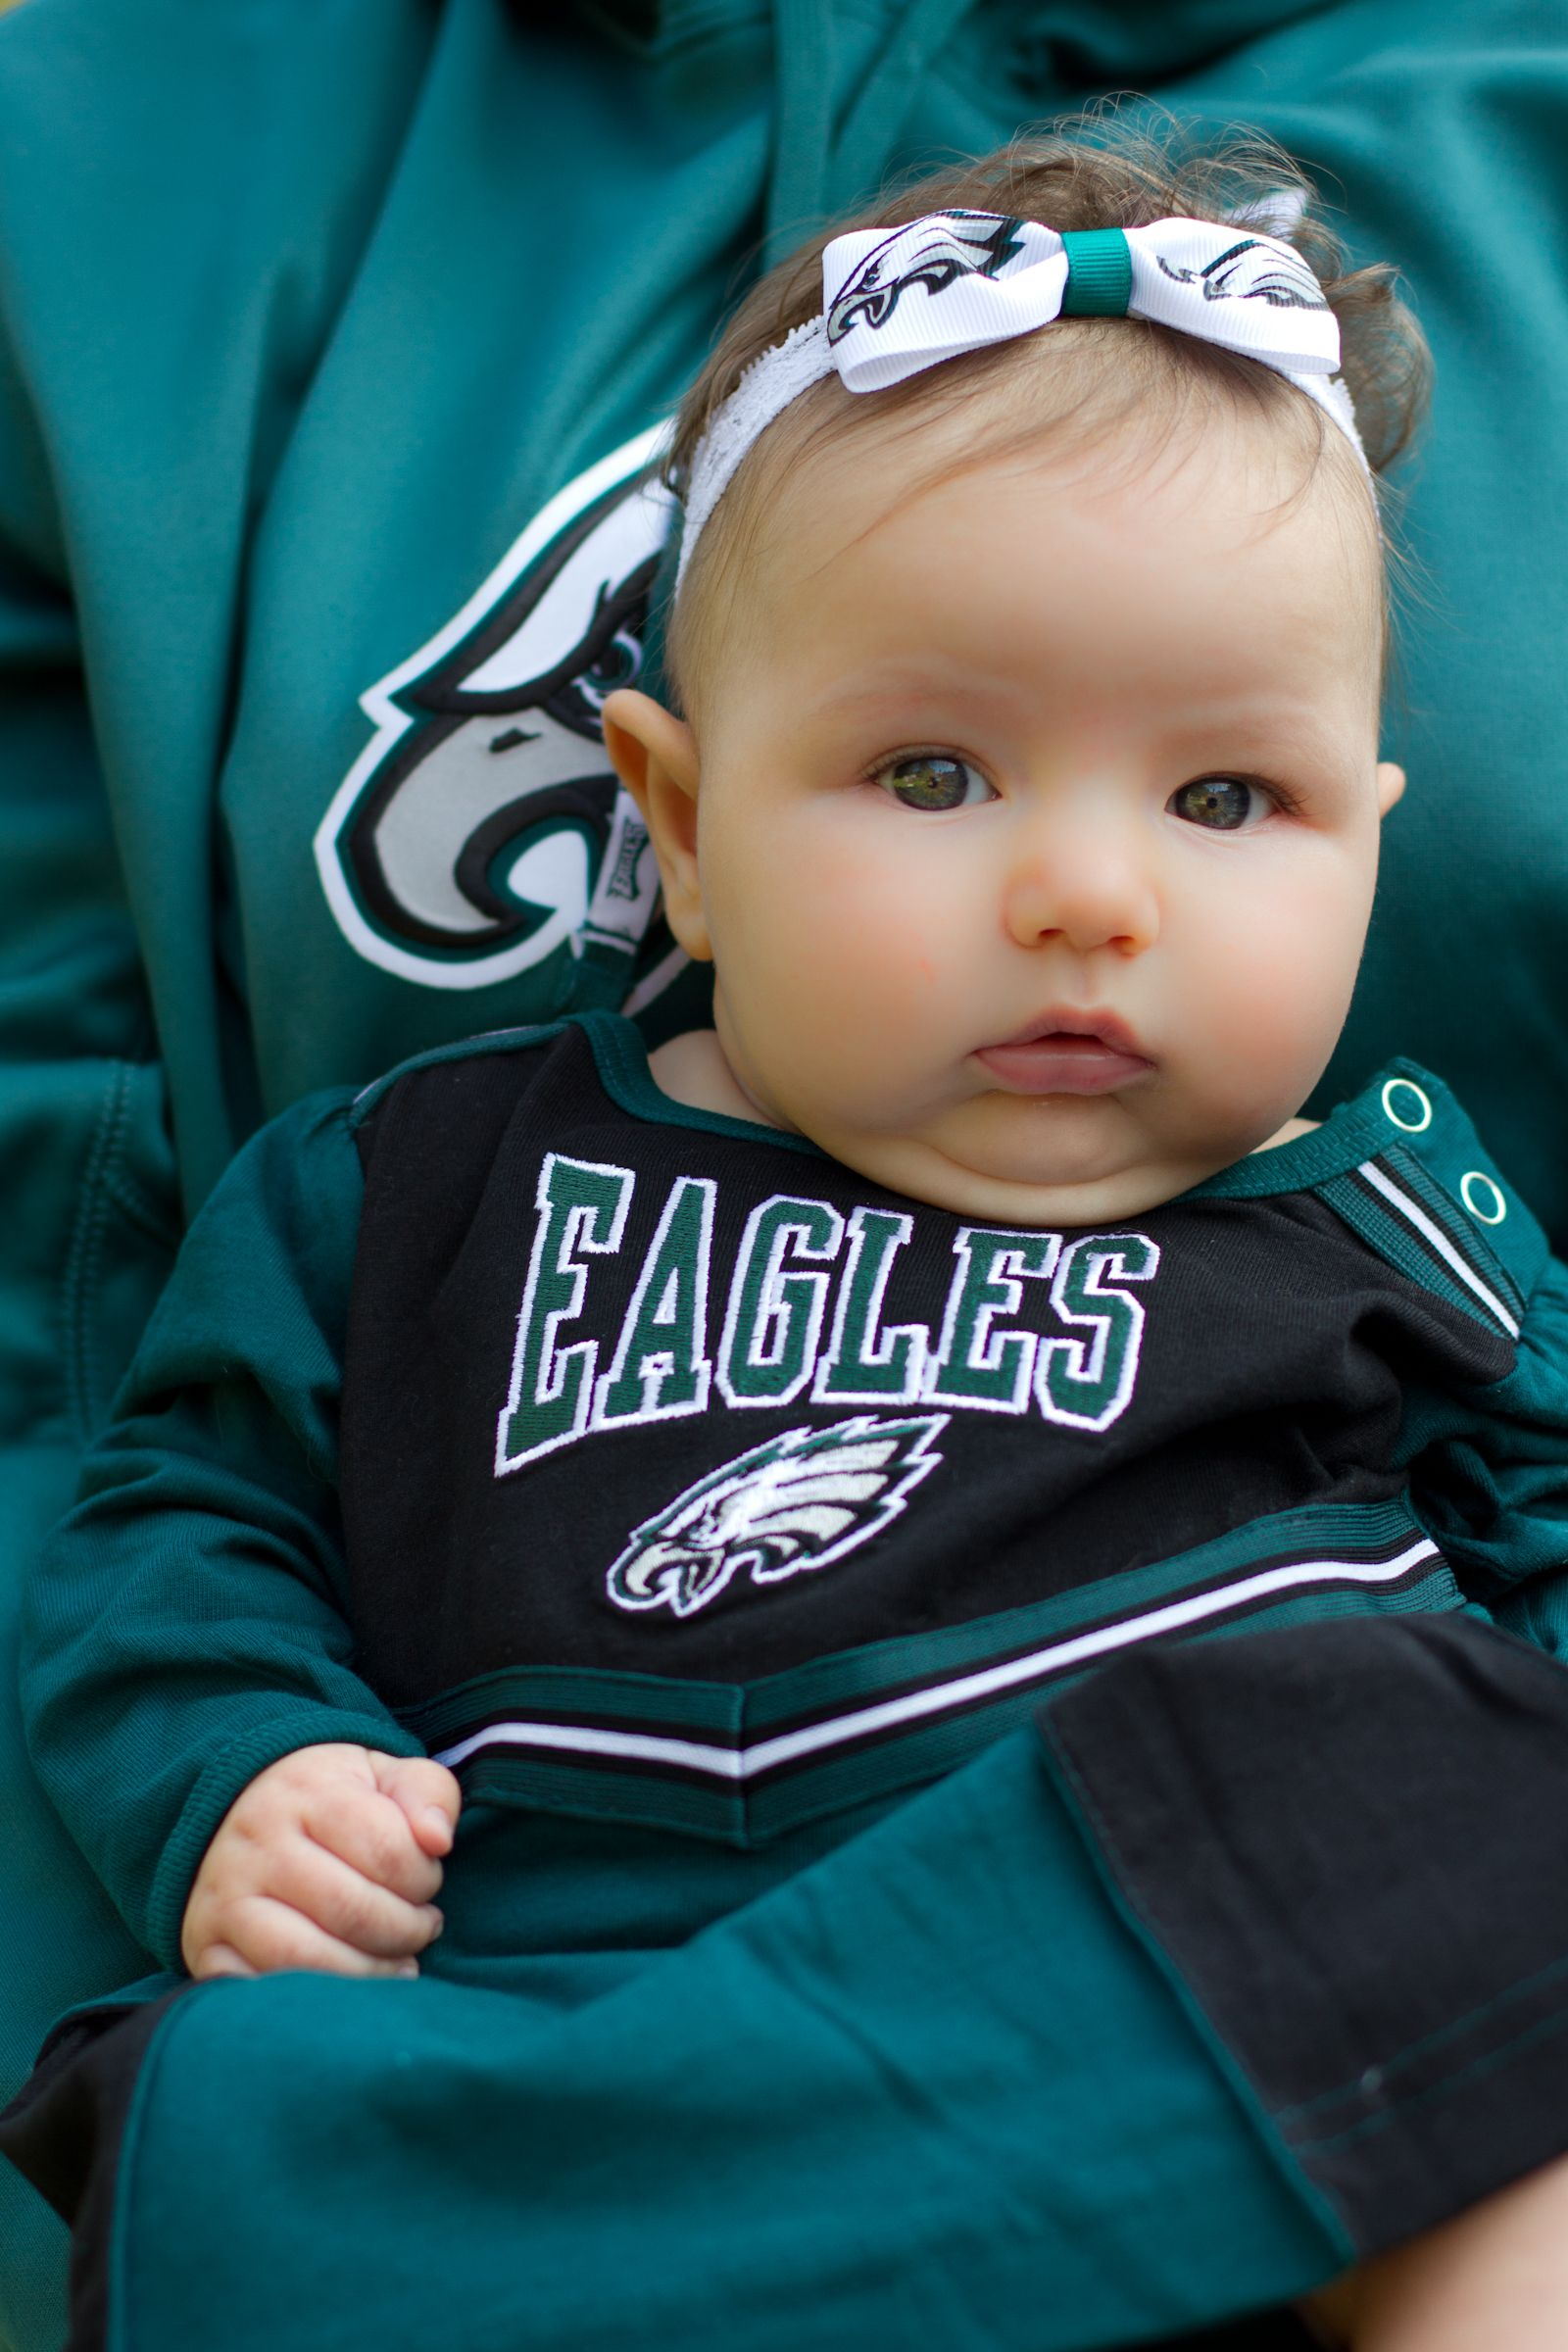 best cheap 67b07 38ce3 Eagles Baby Gear! Sean is a Big Eagles fan. lol for baby ...